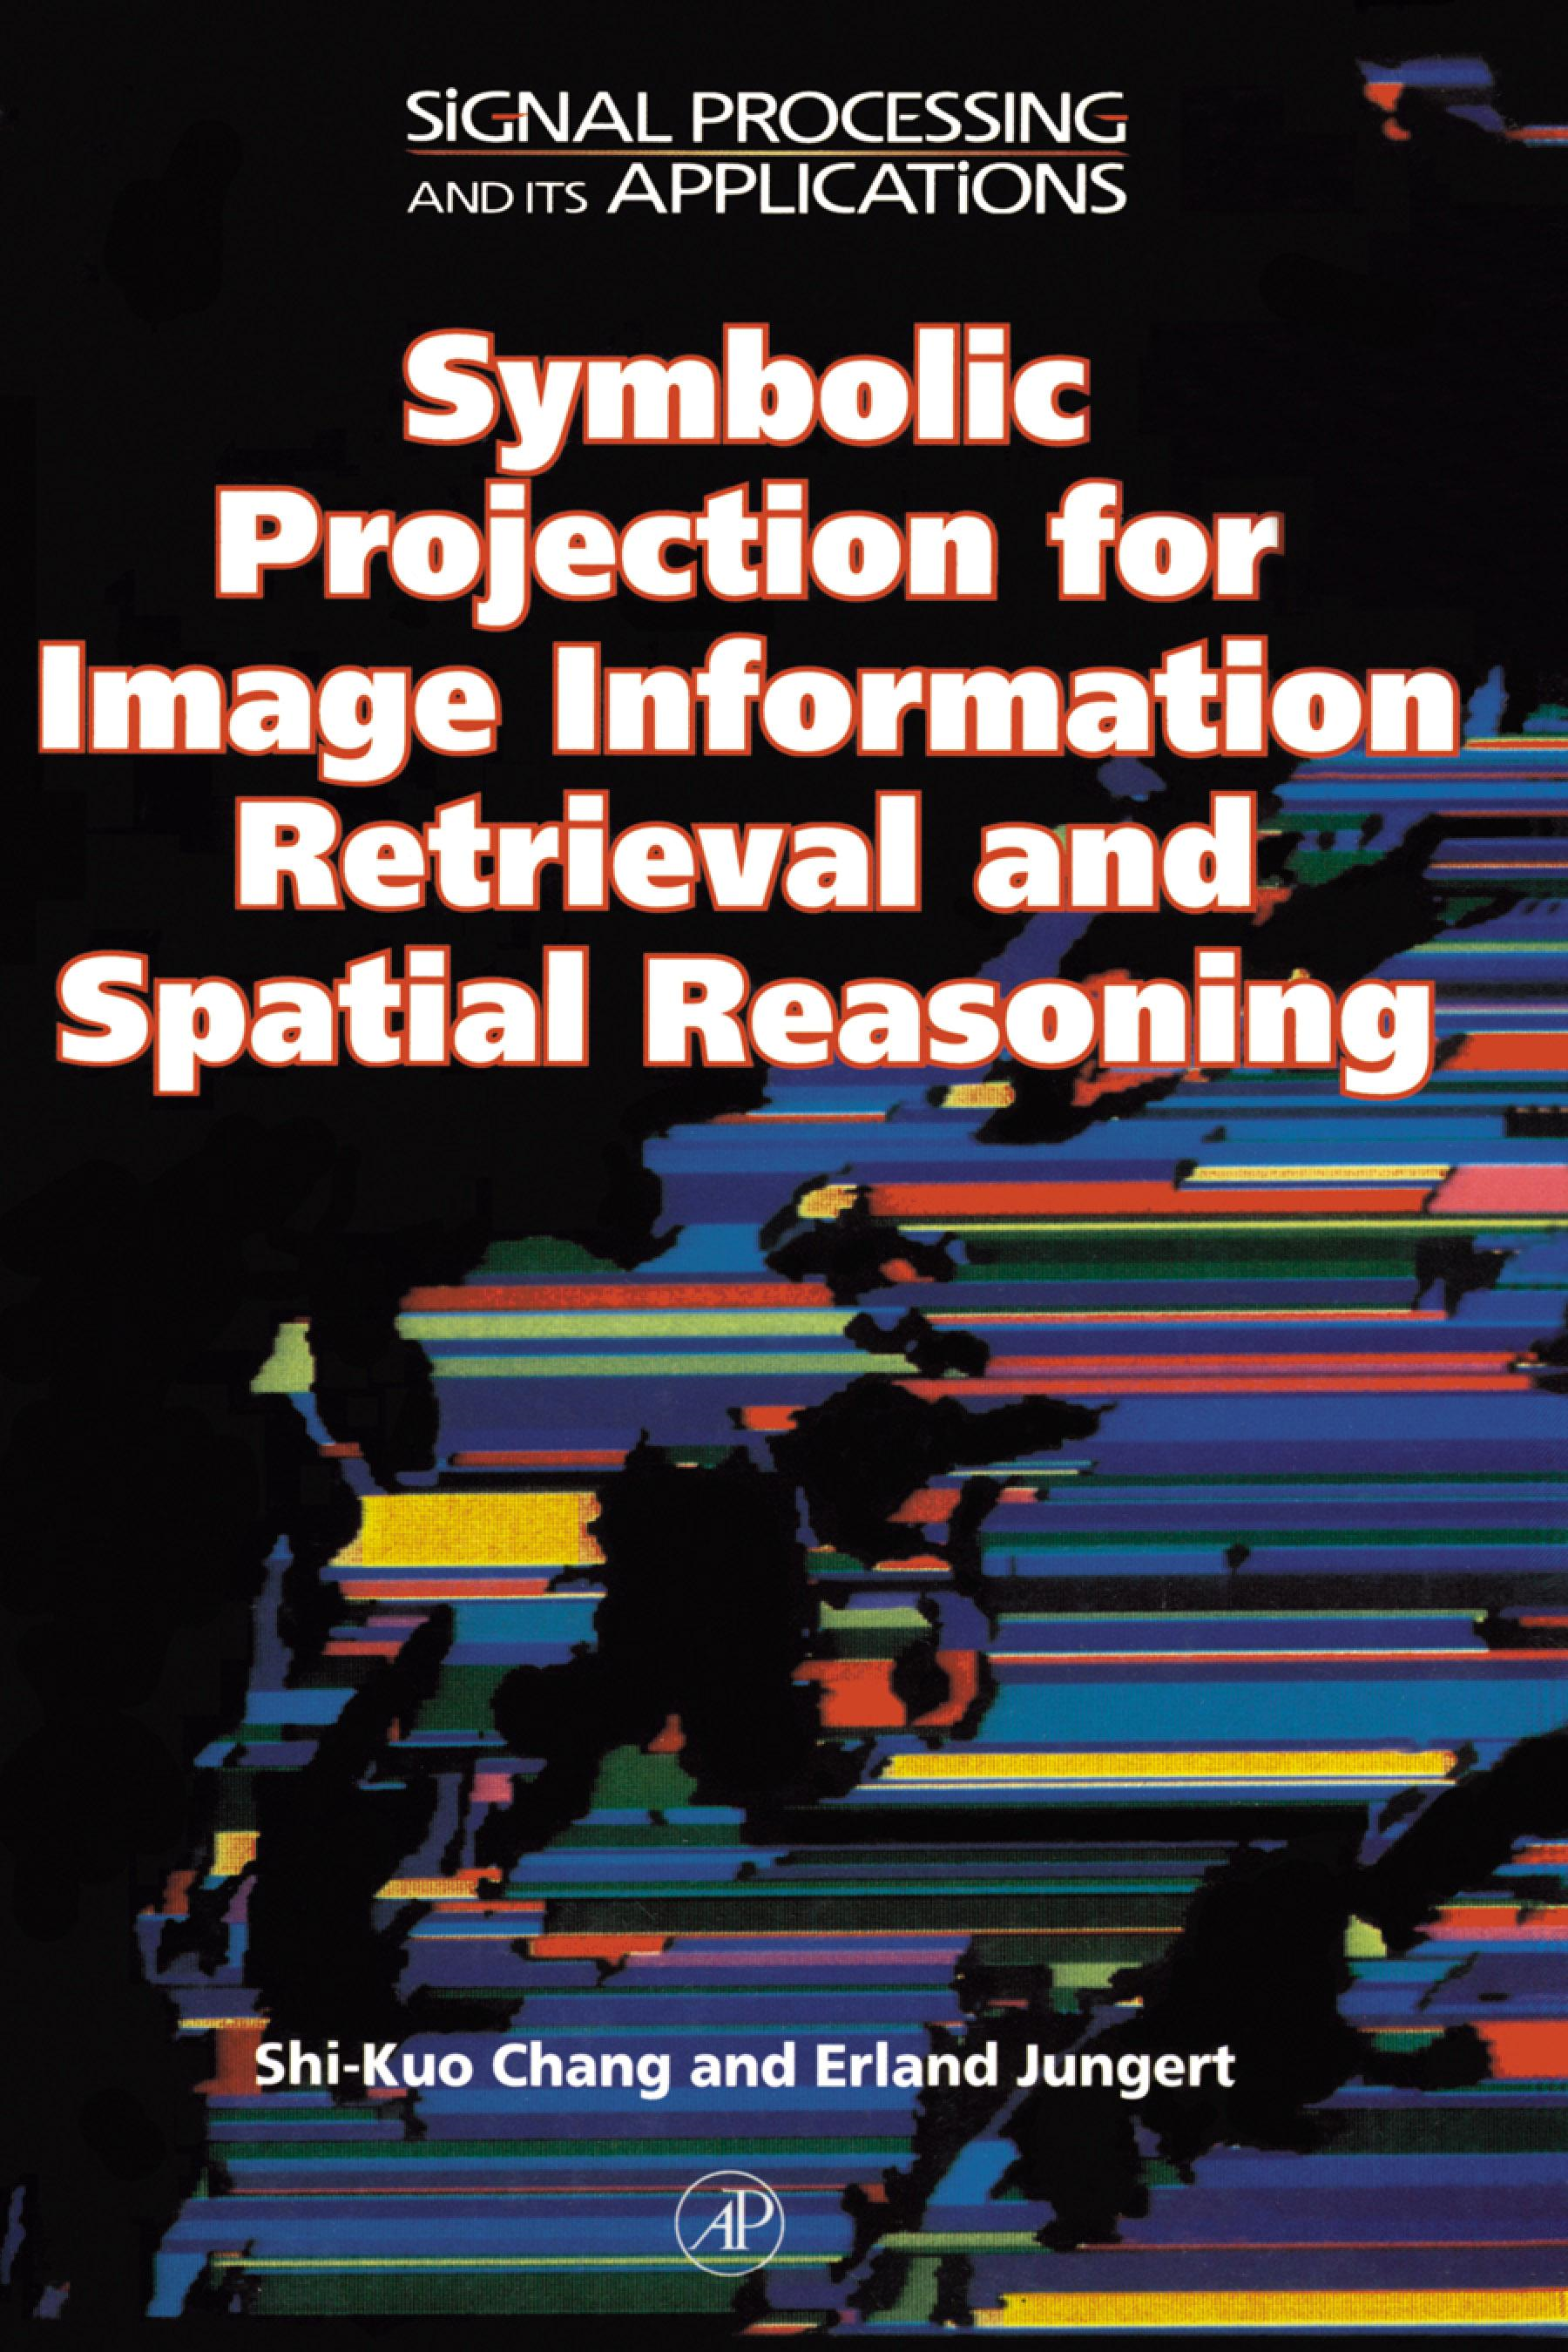 Symbolic Projection for Image Information Retrieval and Spatial Reasoning: Theory, Applications and Systems for Image Information Retrieval and Spatia